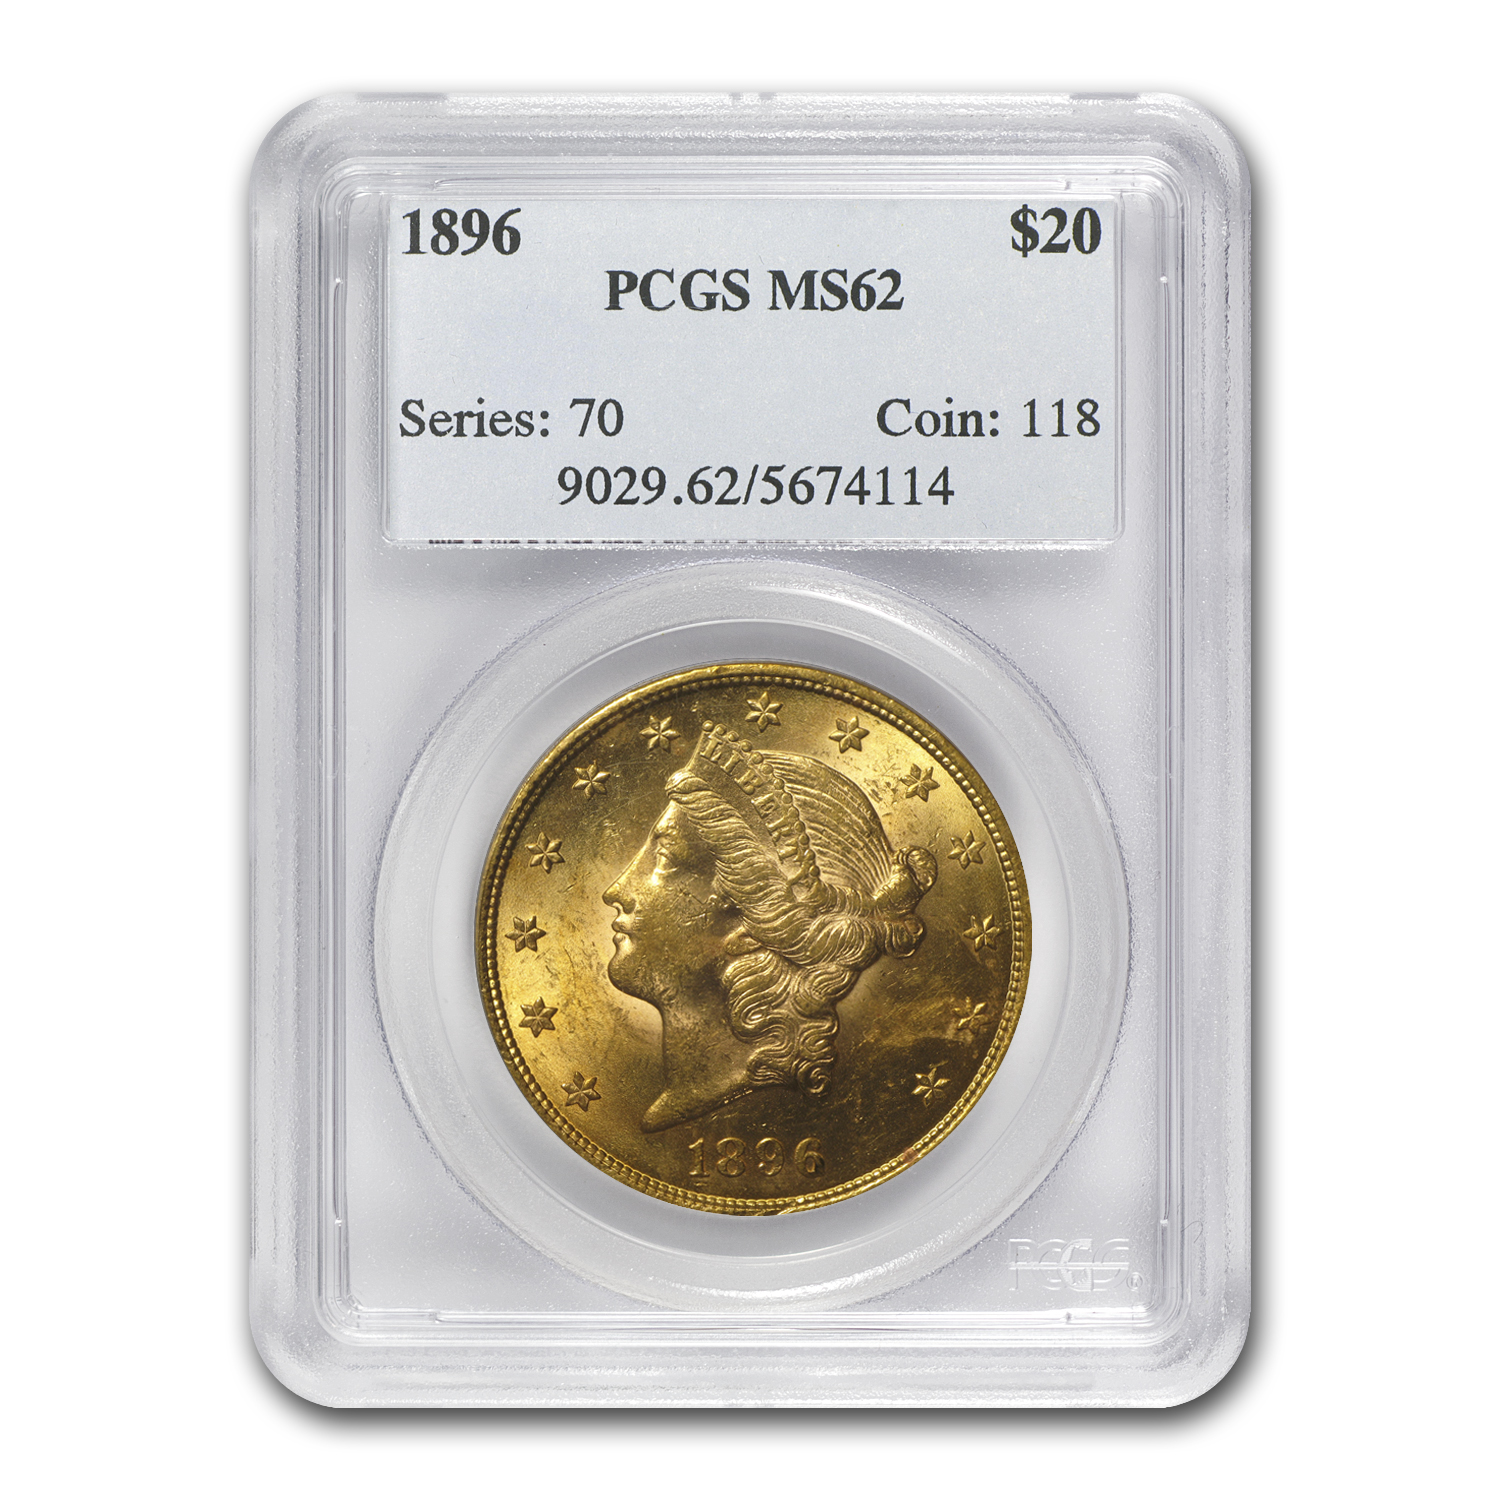 $20 Gold Liberty Double Eagle Date Set - (P Mint) - MS-62 PCGS